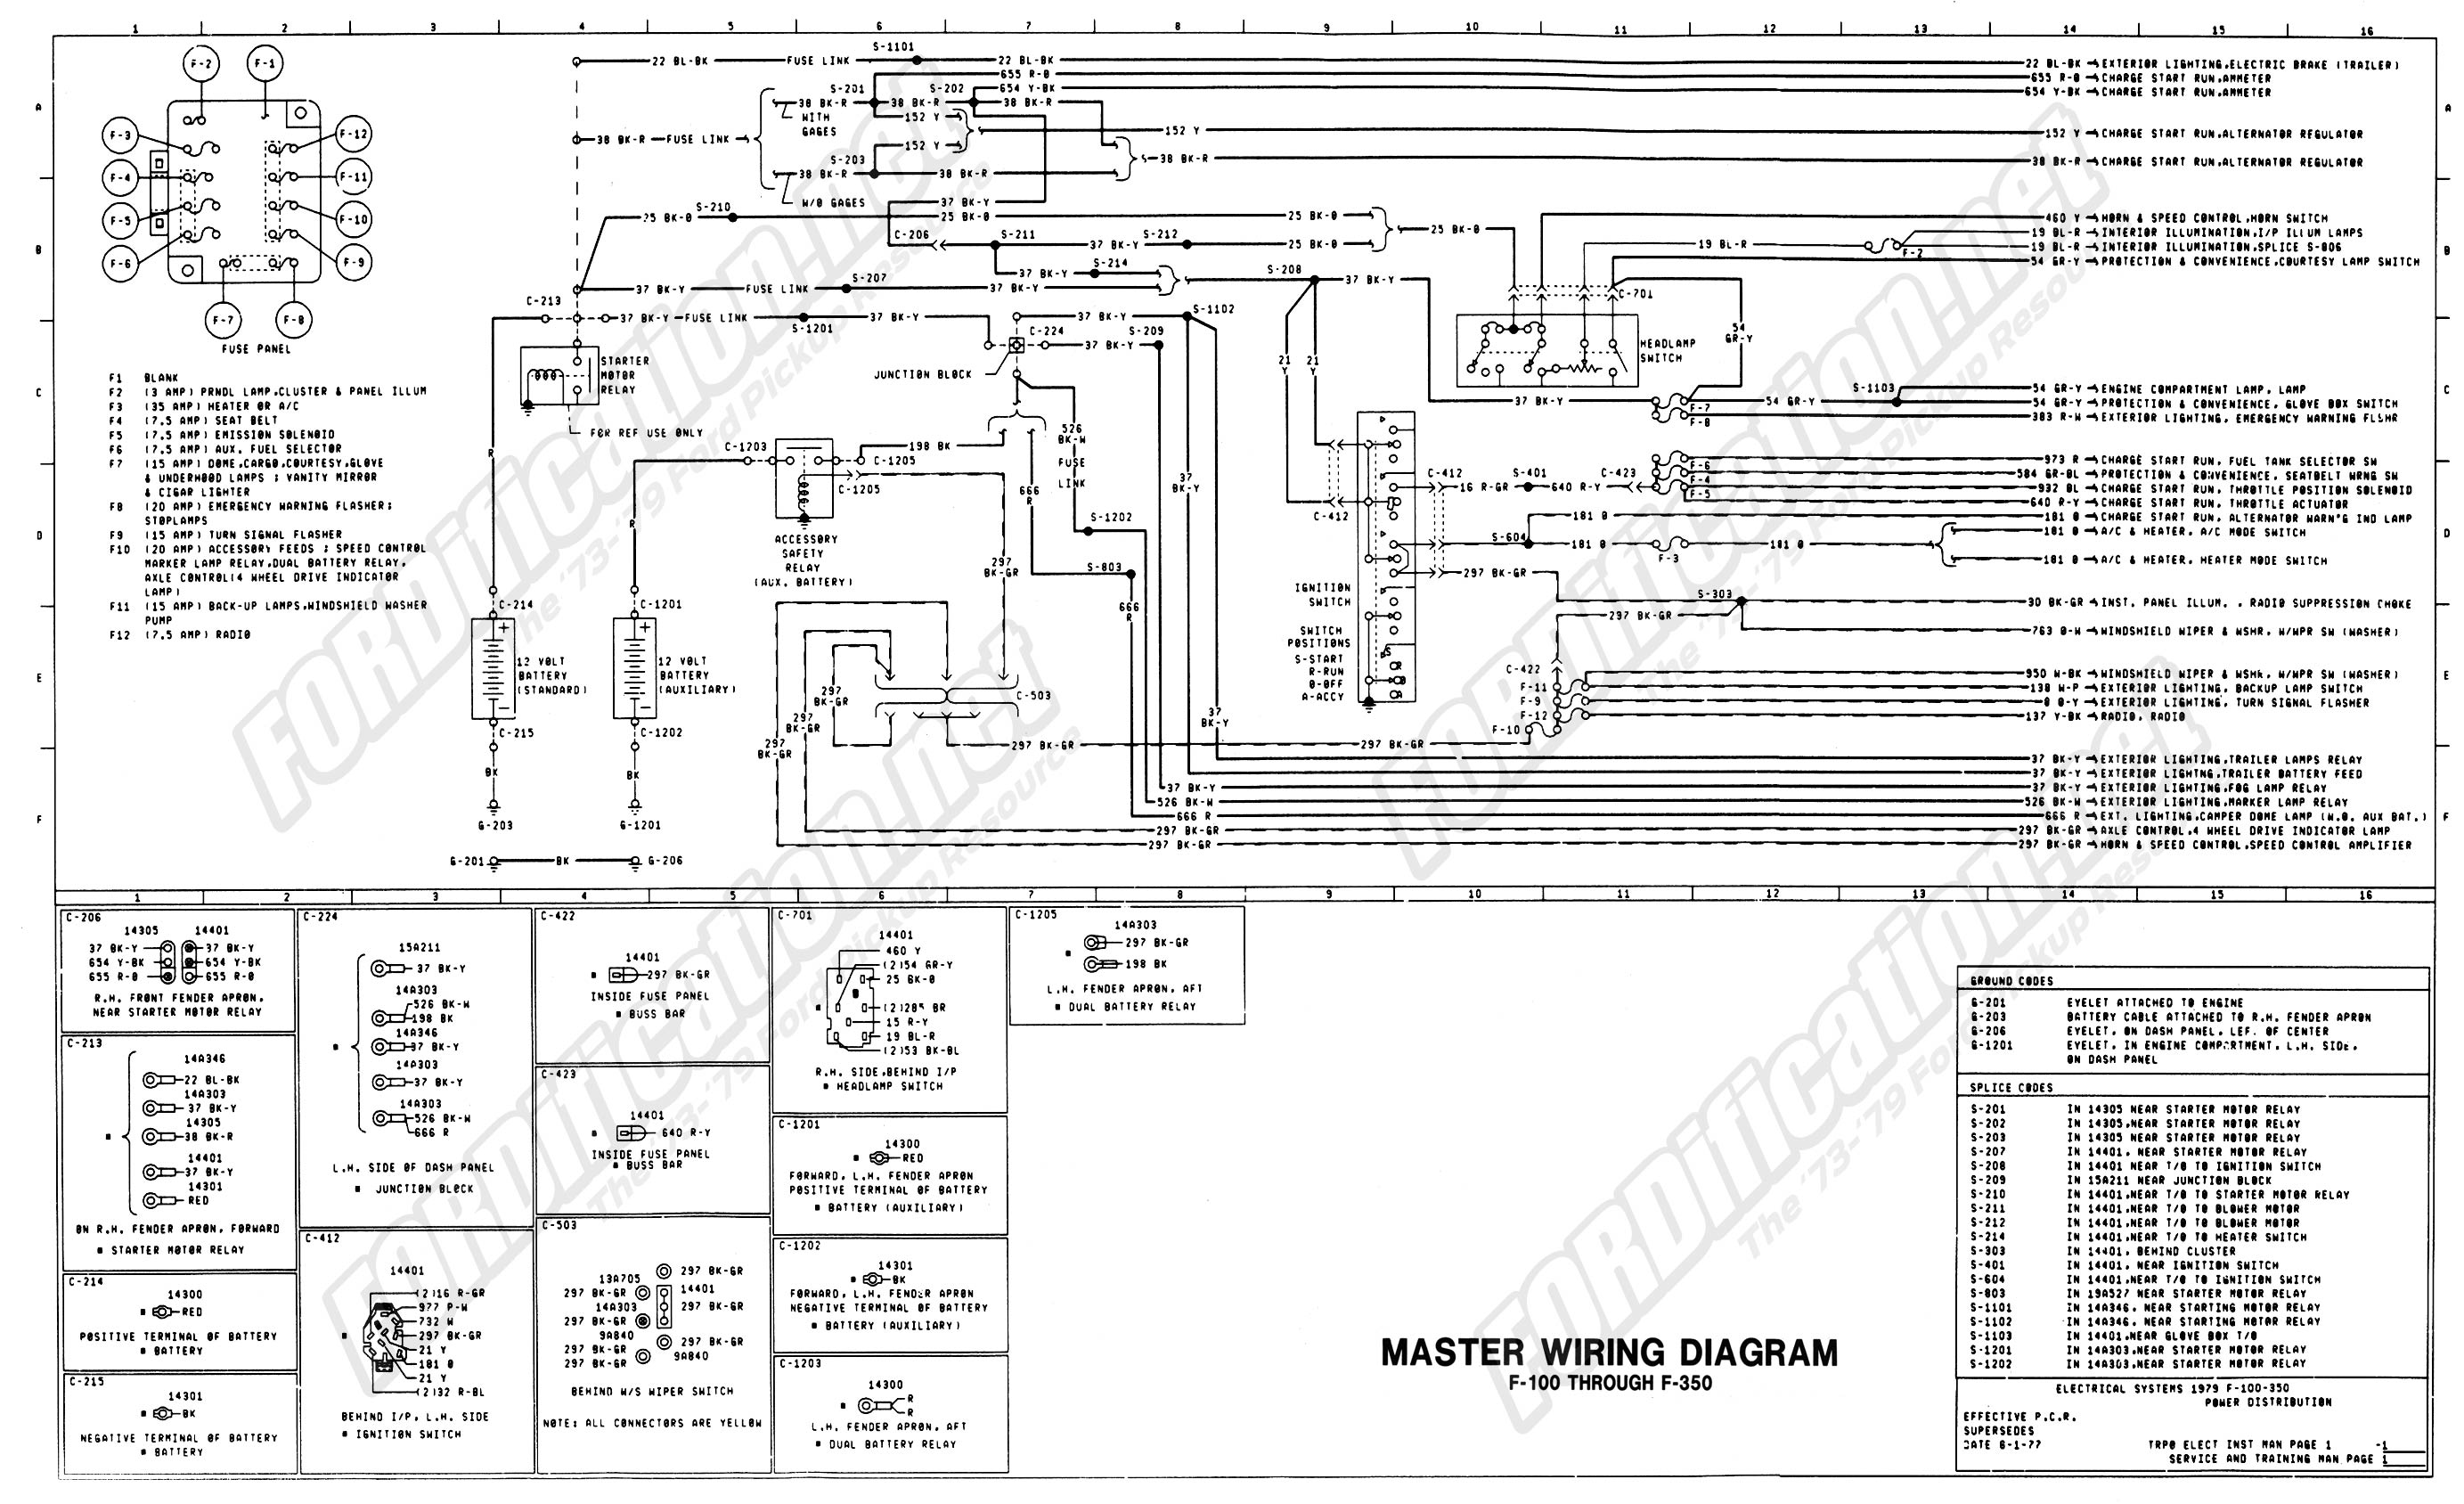 1979 Ford Truck Wiring Diagram Detailed Wiring Diagrams Ford 302 Engine  Wiring Diagrams 1970 Ford Pickup Wiring Diagram